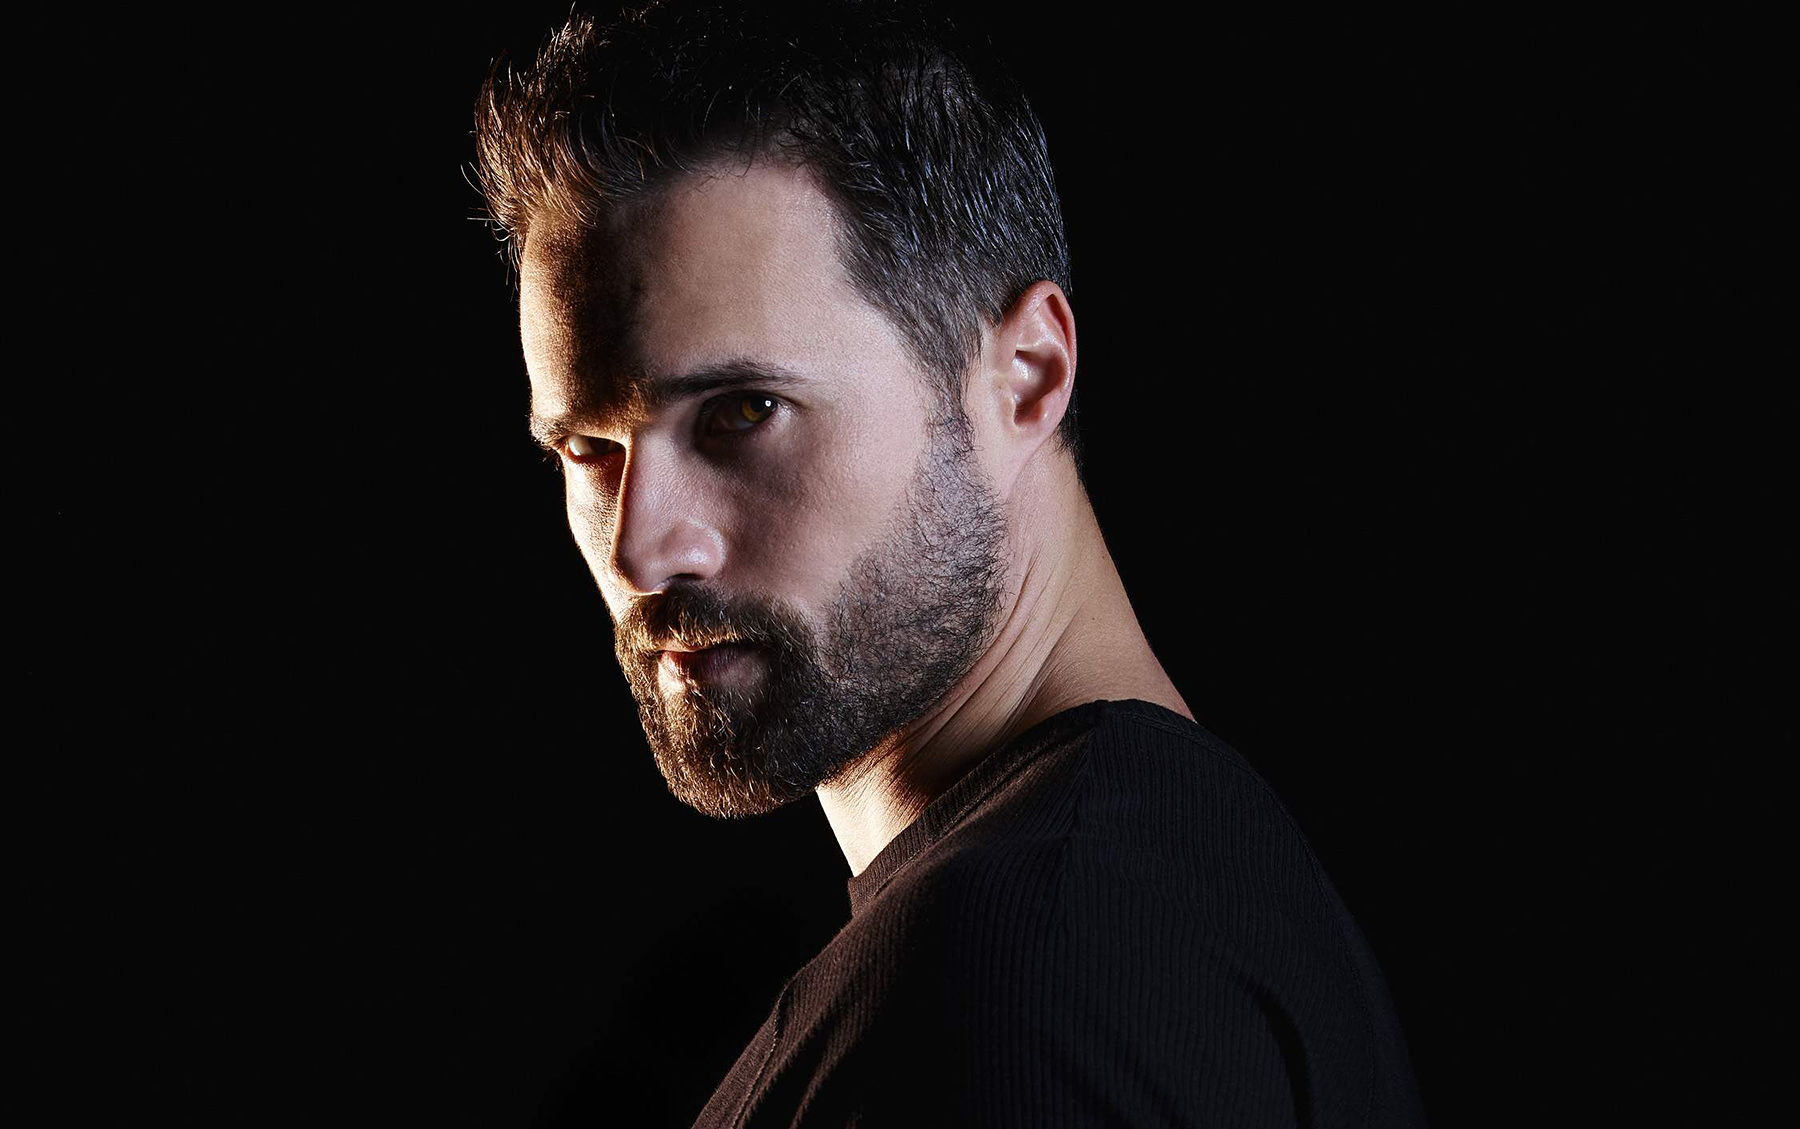 Marvel confirma qué ente será Grant Ward en Agents of S.H.I.E.L.D.